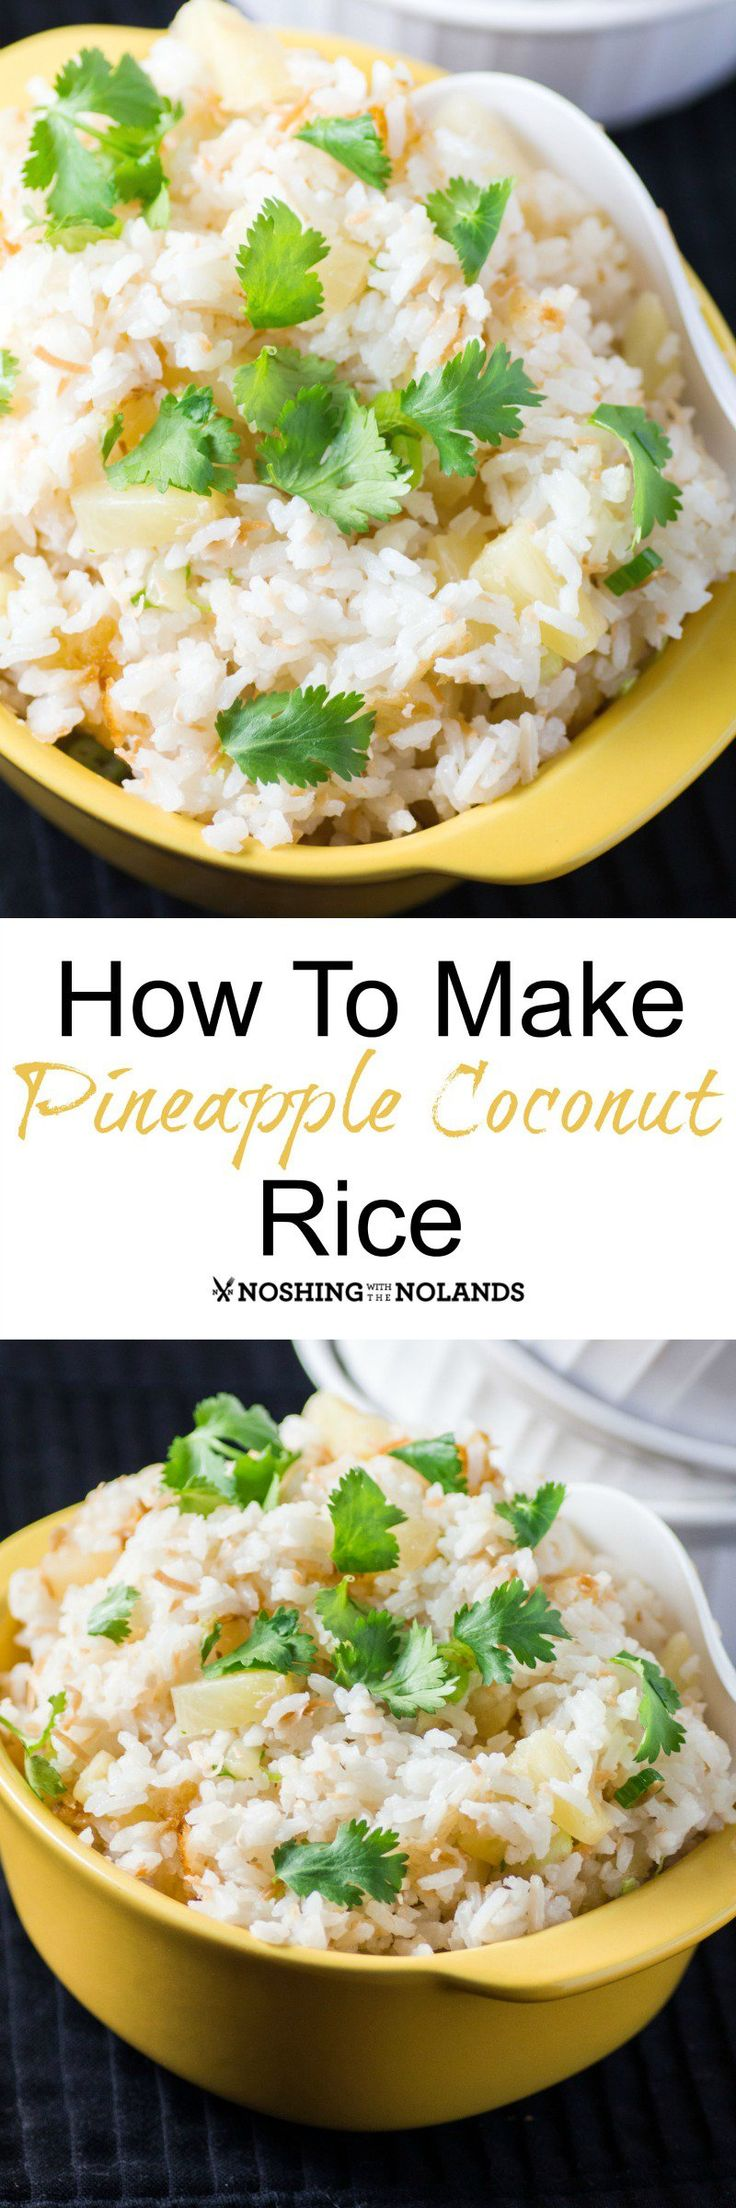 Looking for a great coconut recipe? I love making coconut rice and now wanted to show you How to Make Coconut Pineapple Rice.